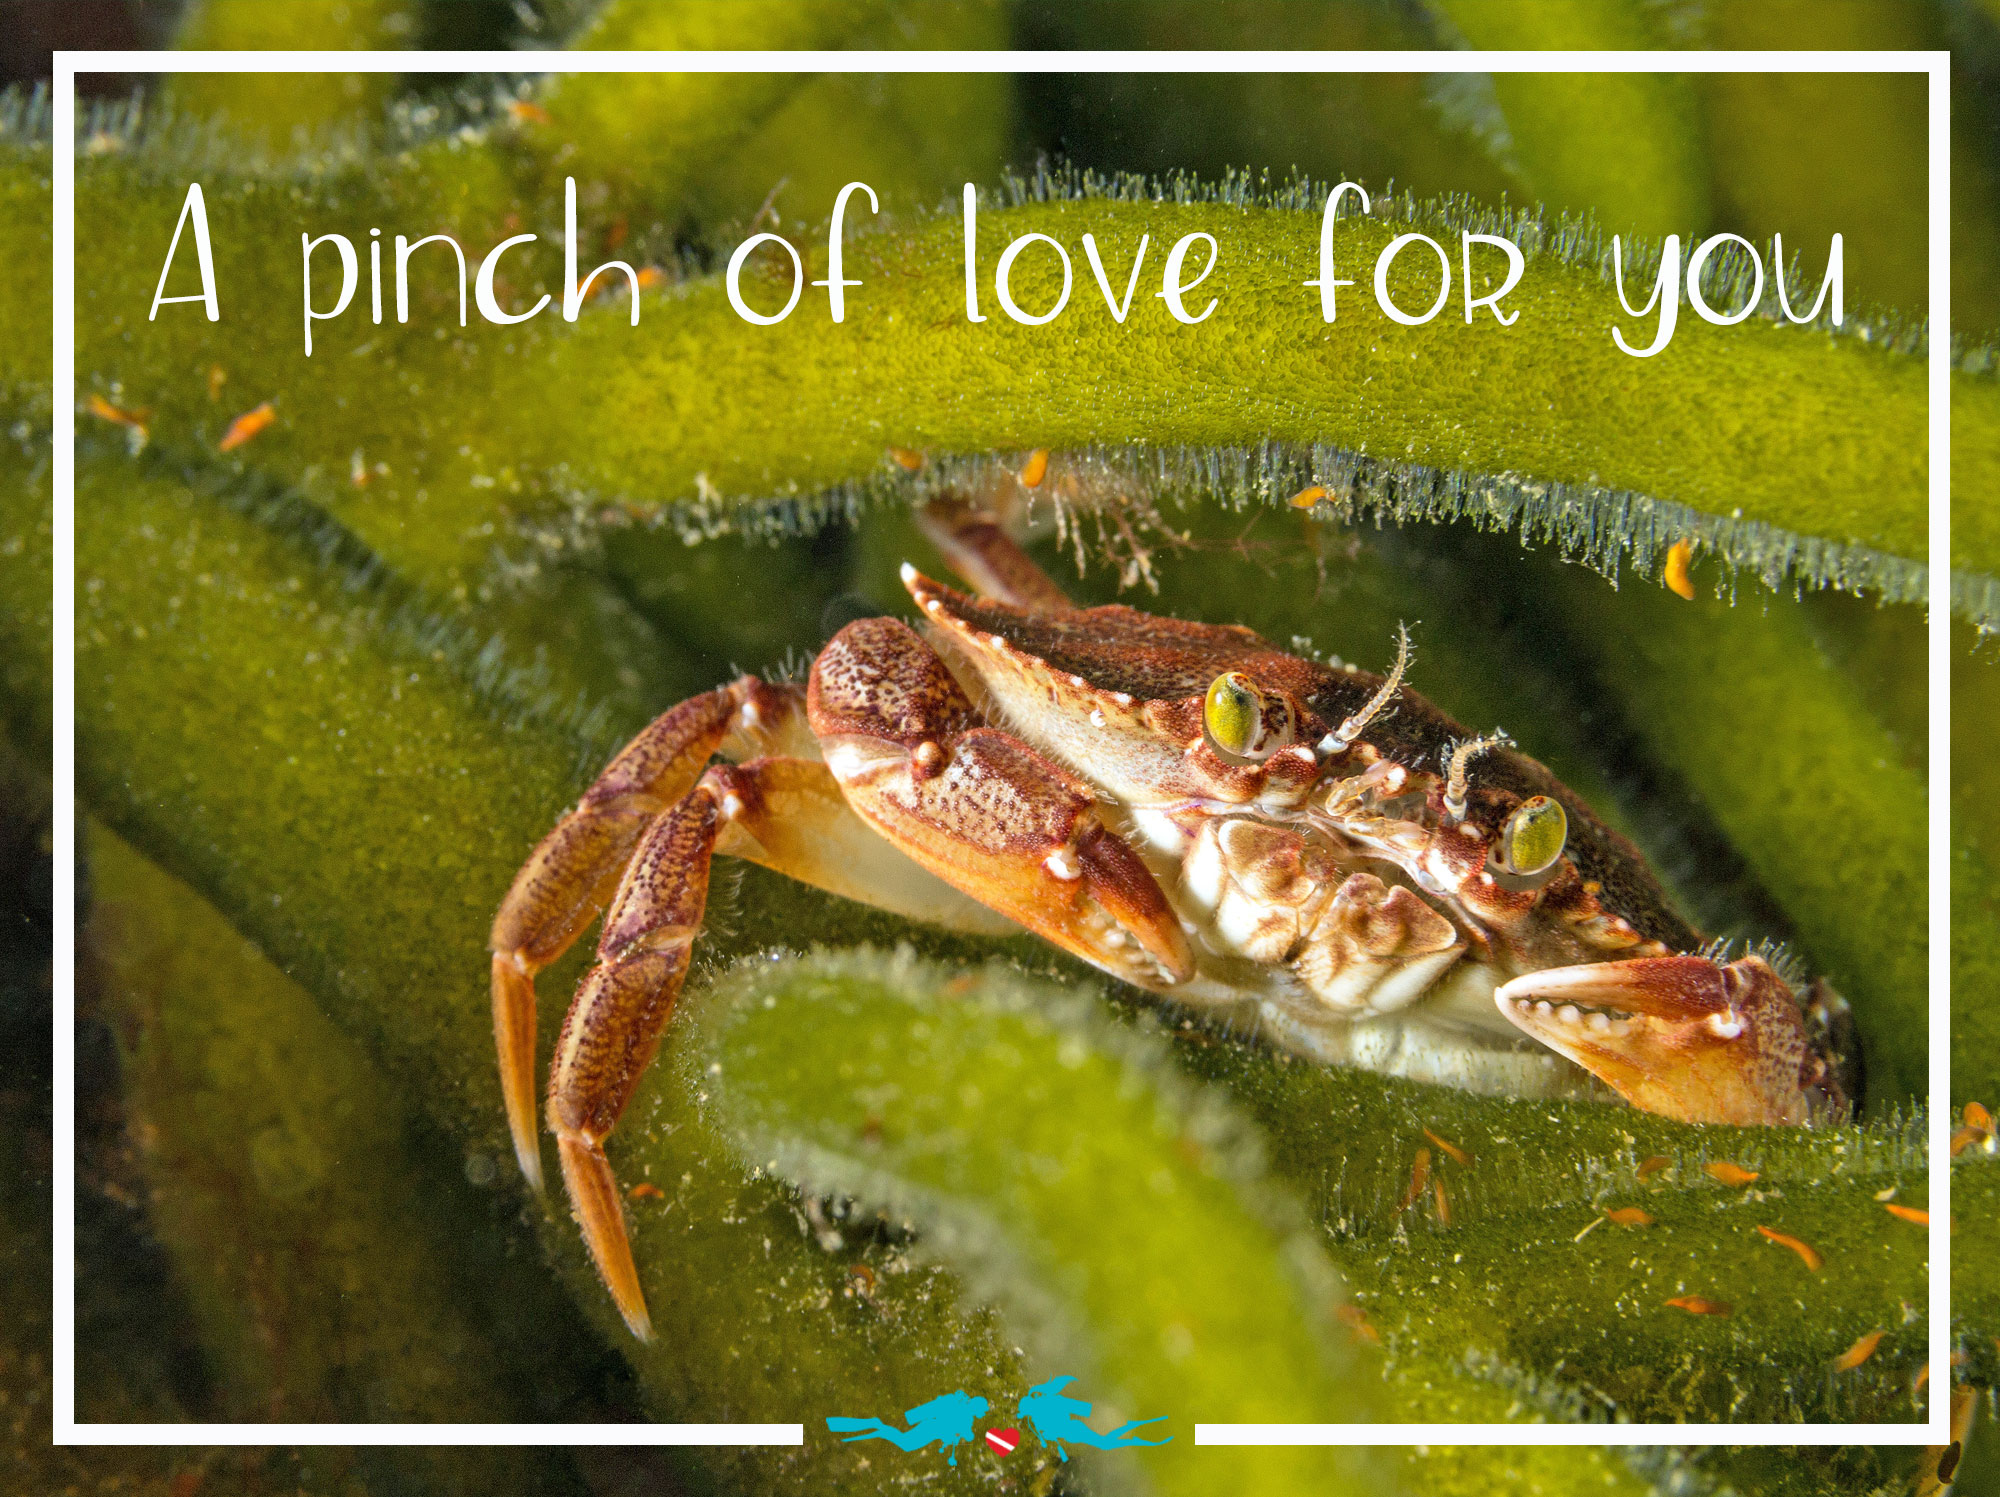 Crab Valentine's Day Scuba Diving Quote